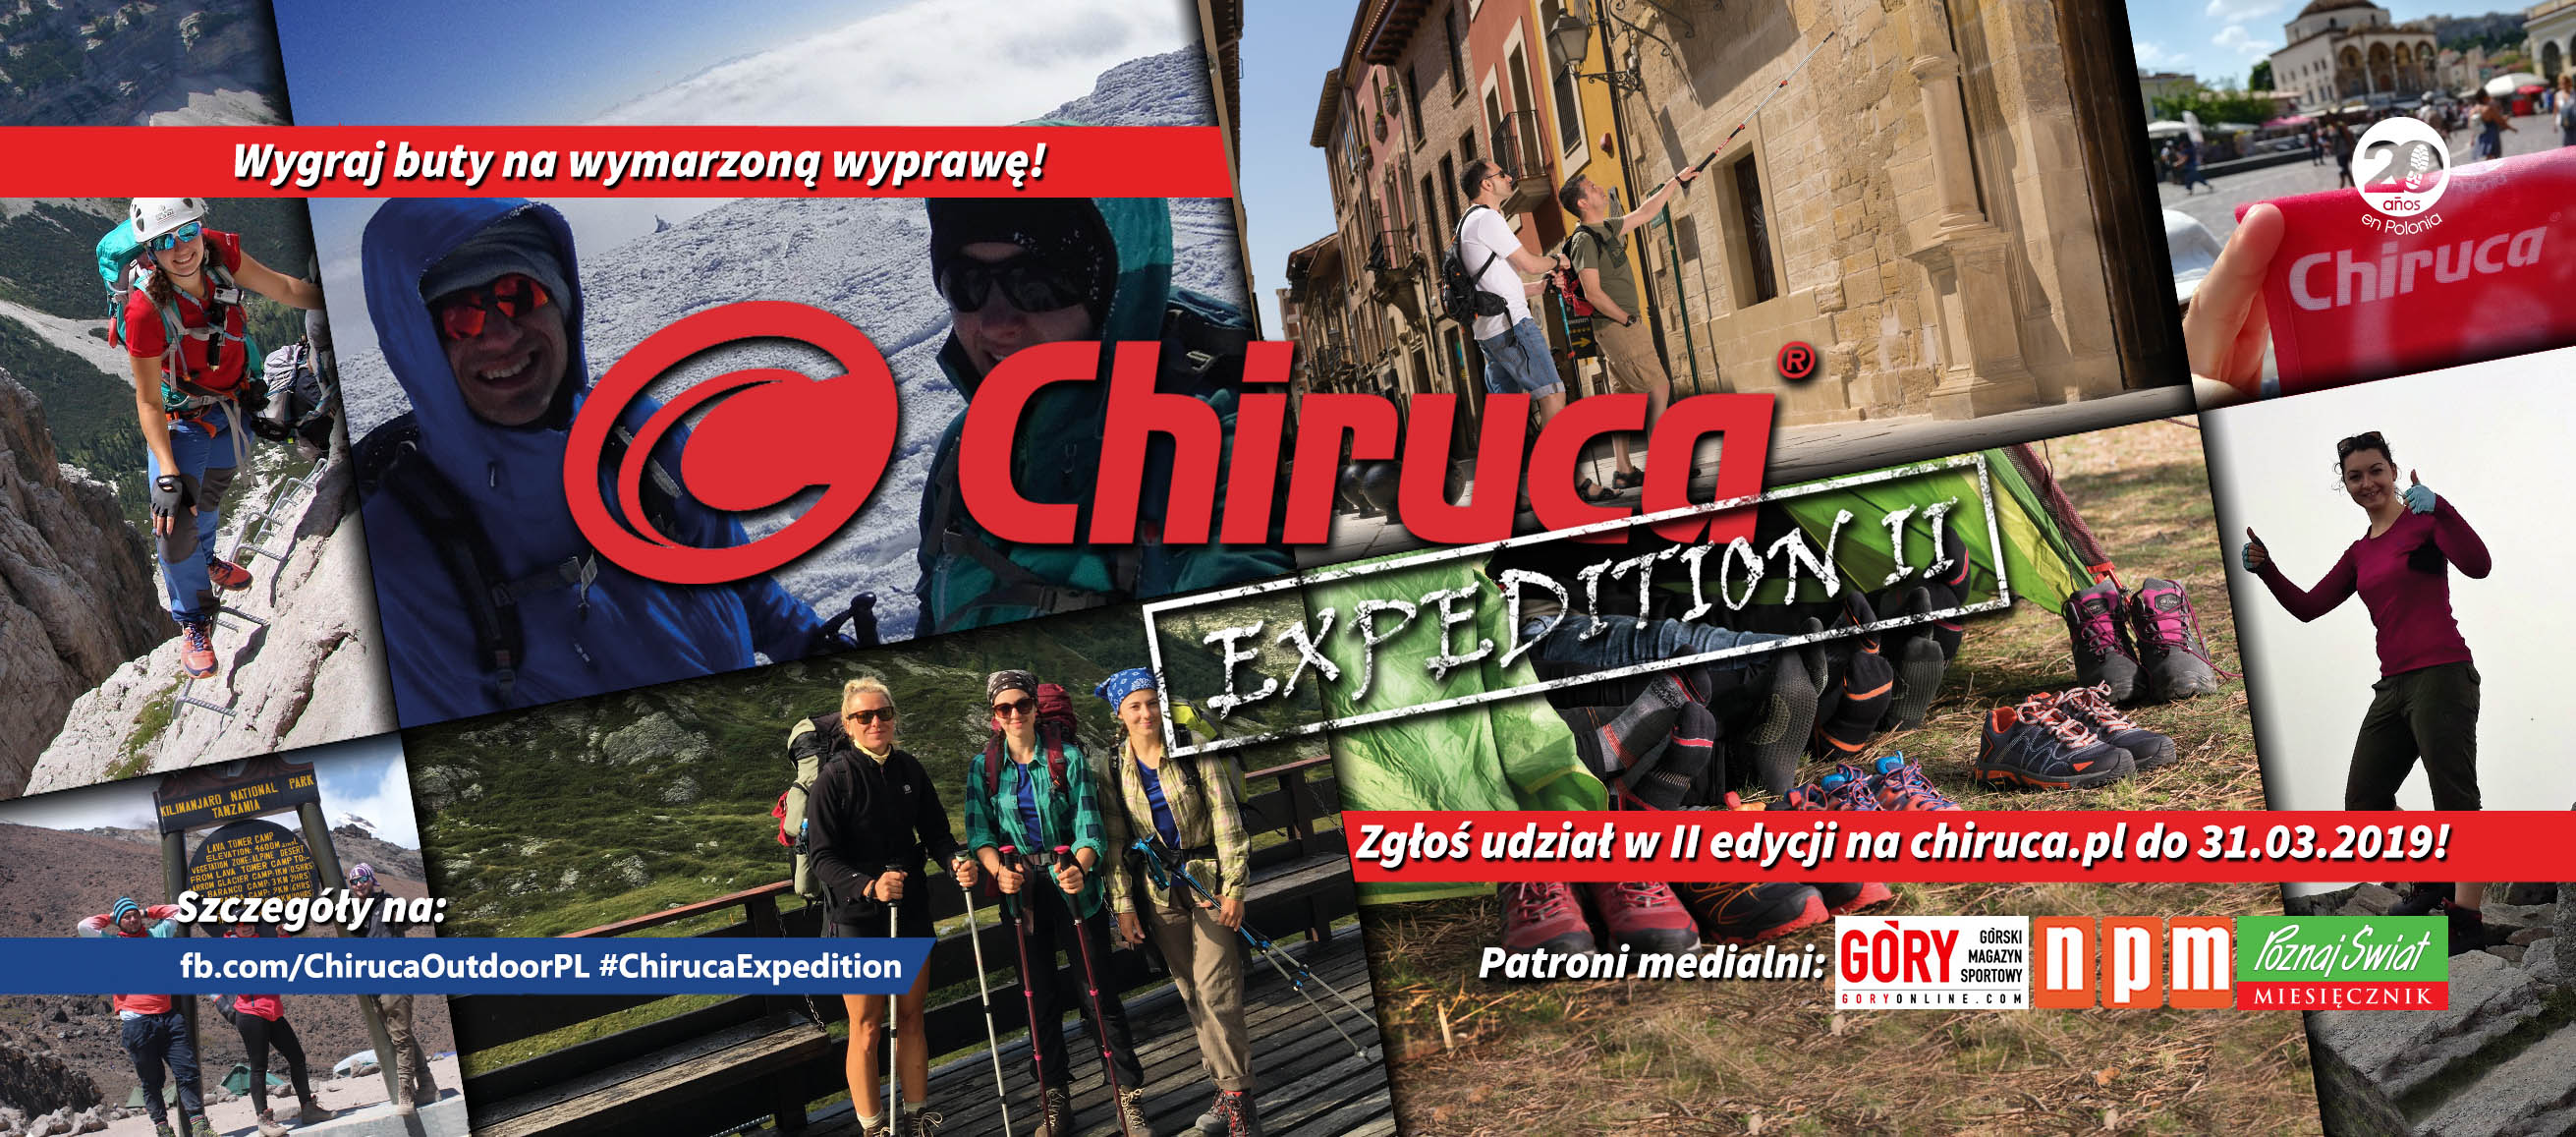 Chiruca EXPEDITION II